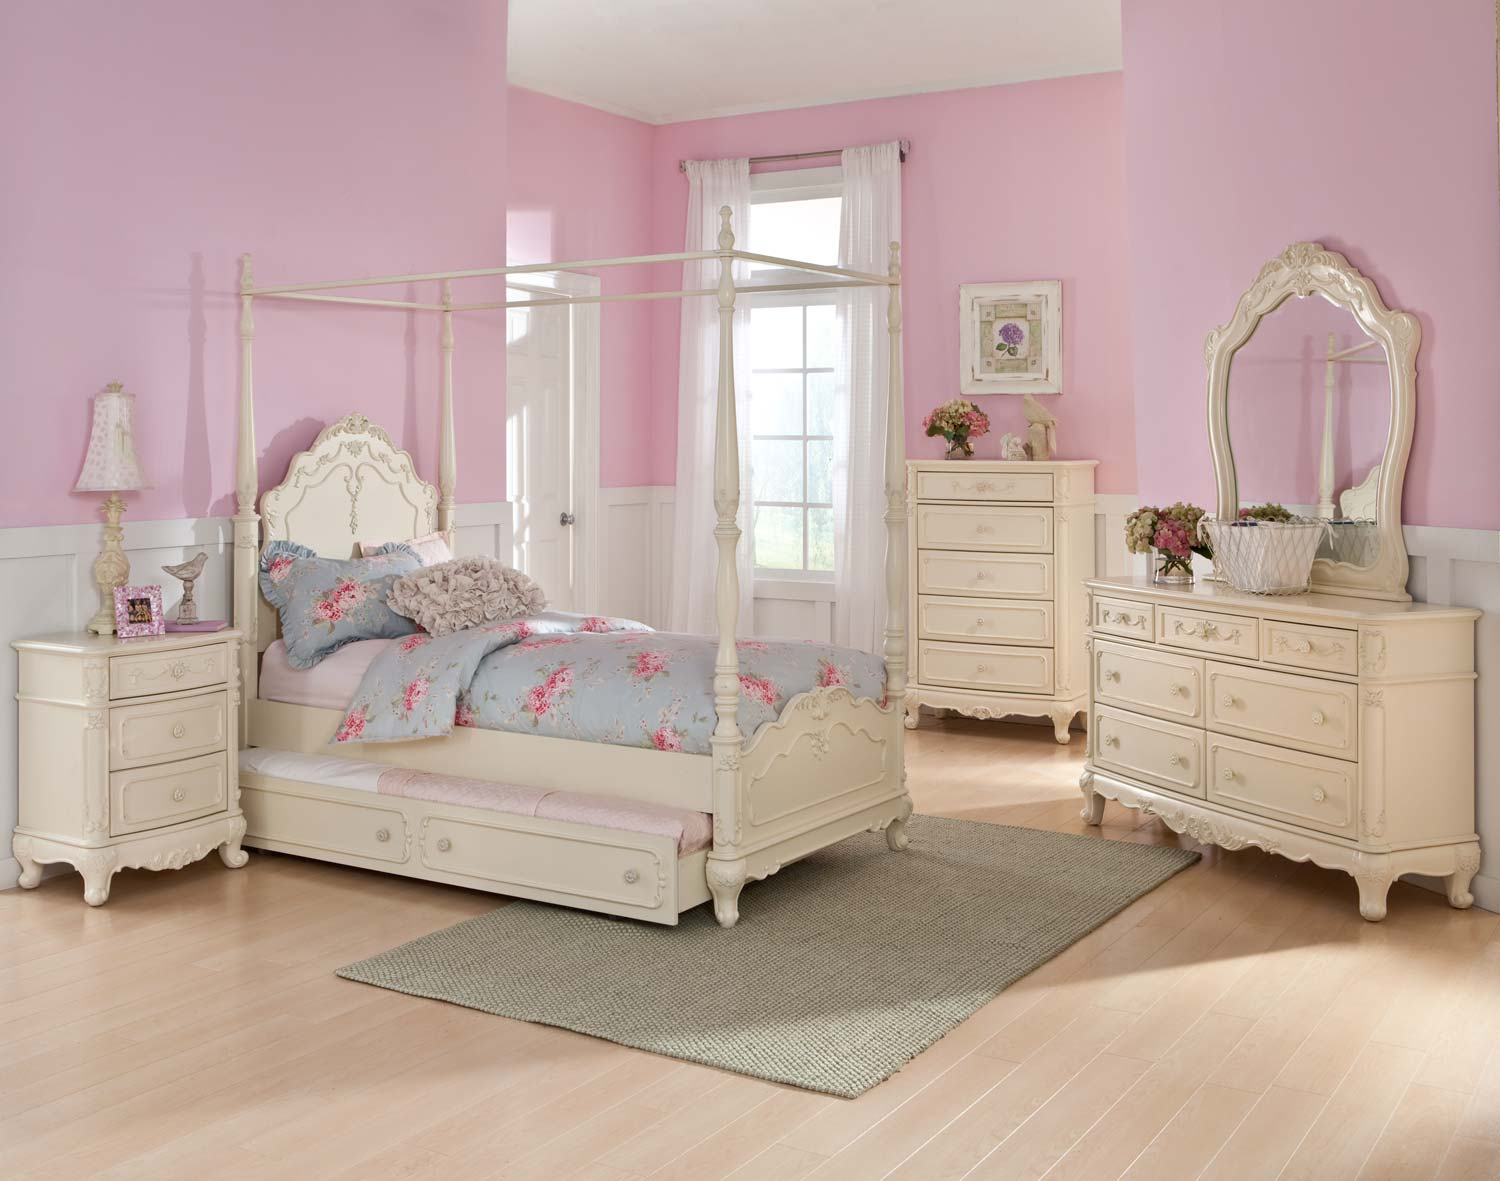 Homelegance Cinderella Poster Bedroom Set Ecru B1386tpp Interiors Inside Ideas Interiors design about Everything [magnanprojects.com]